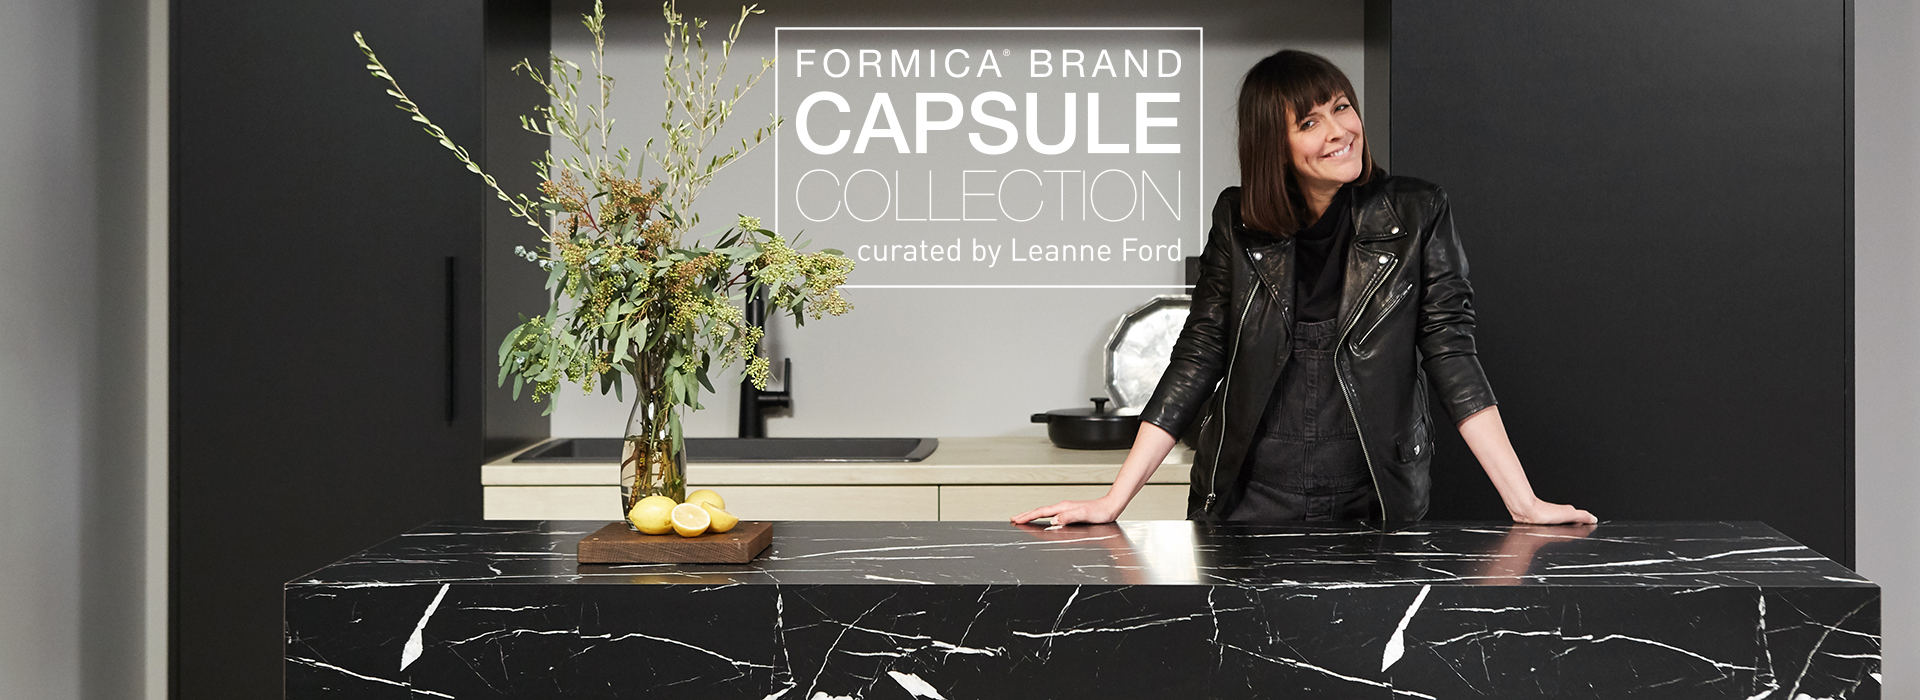 Formica Brand Capsule Collection Curated by Leanne Ford